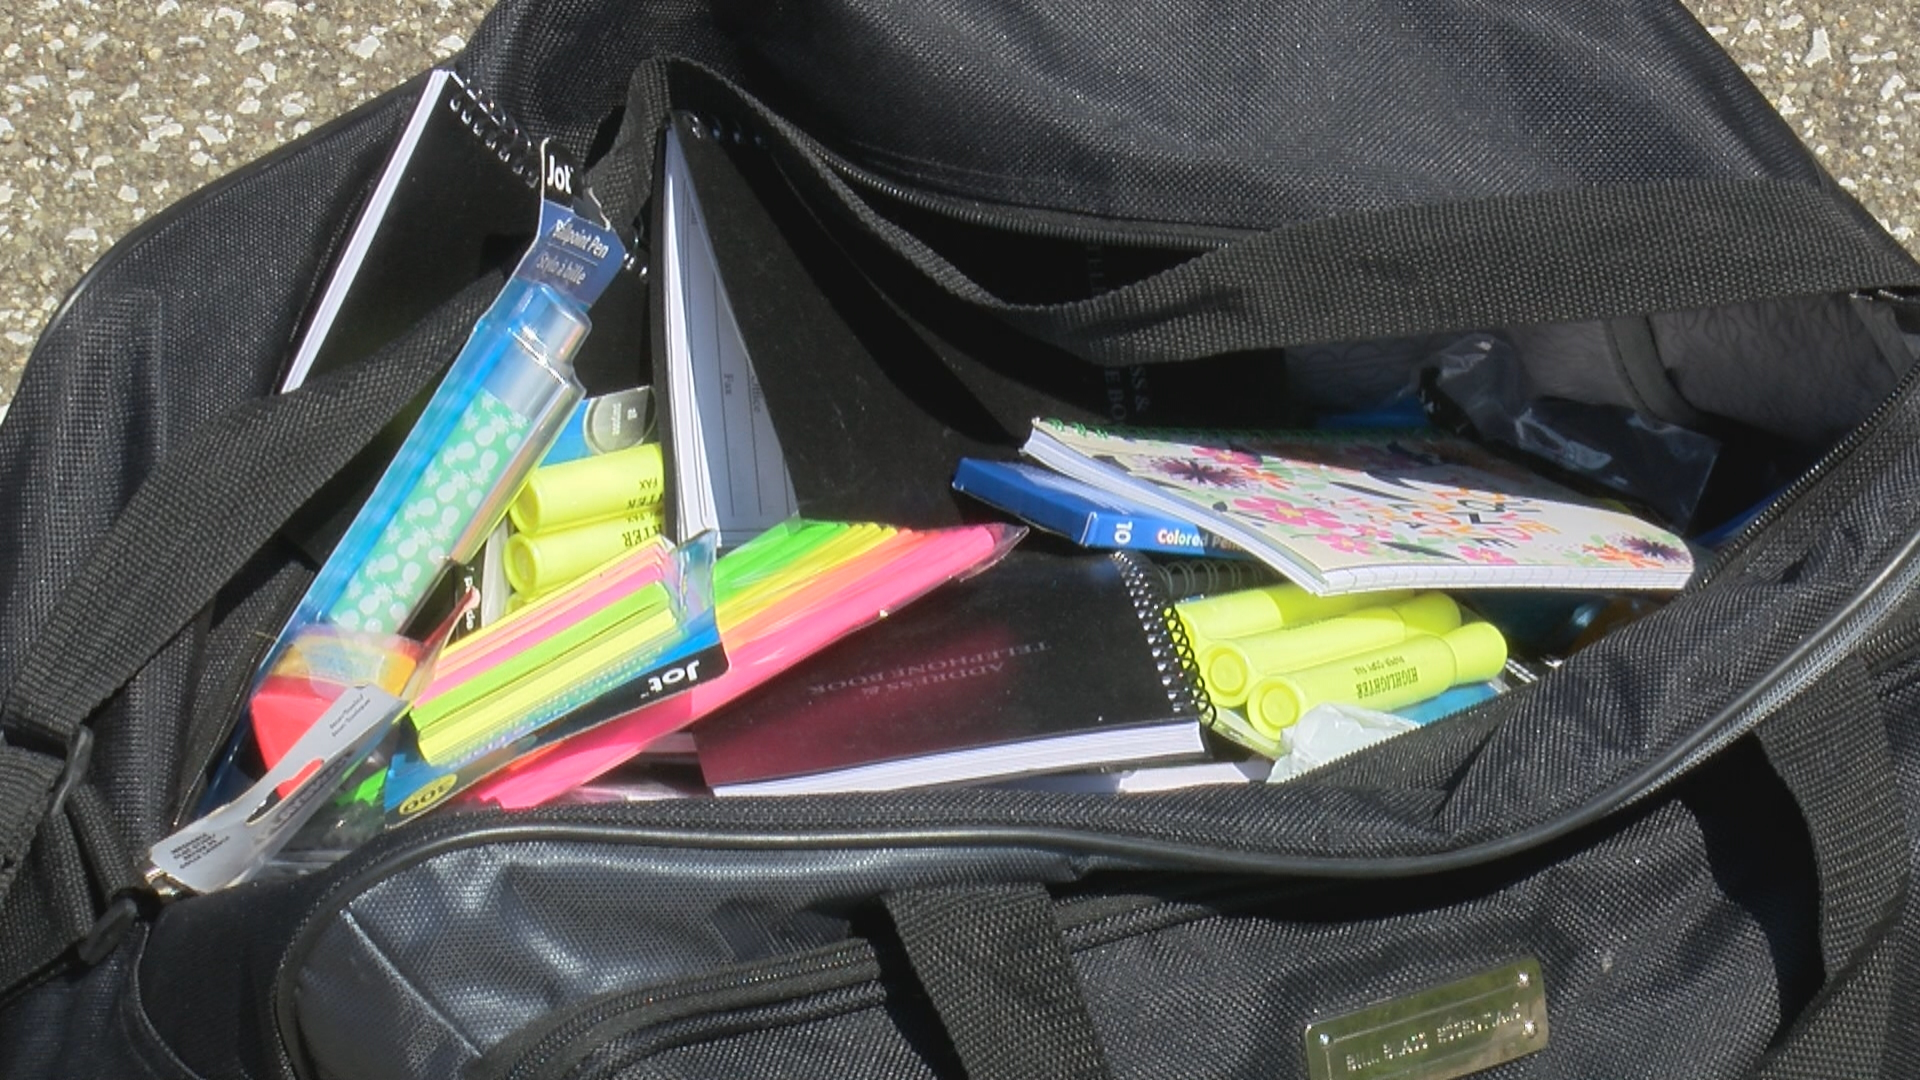 More than 500 students get free backpacks and school supplies